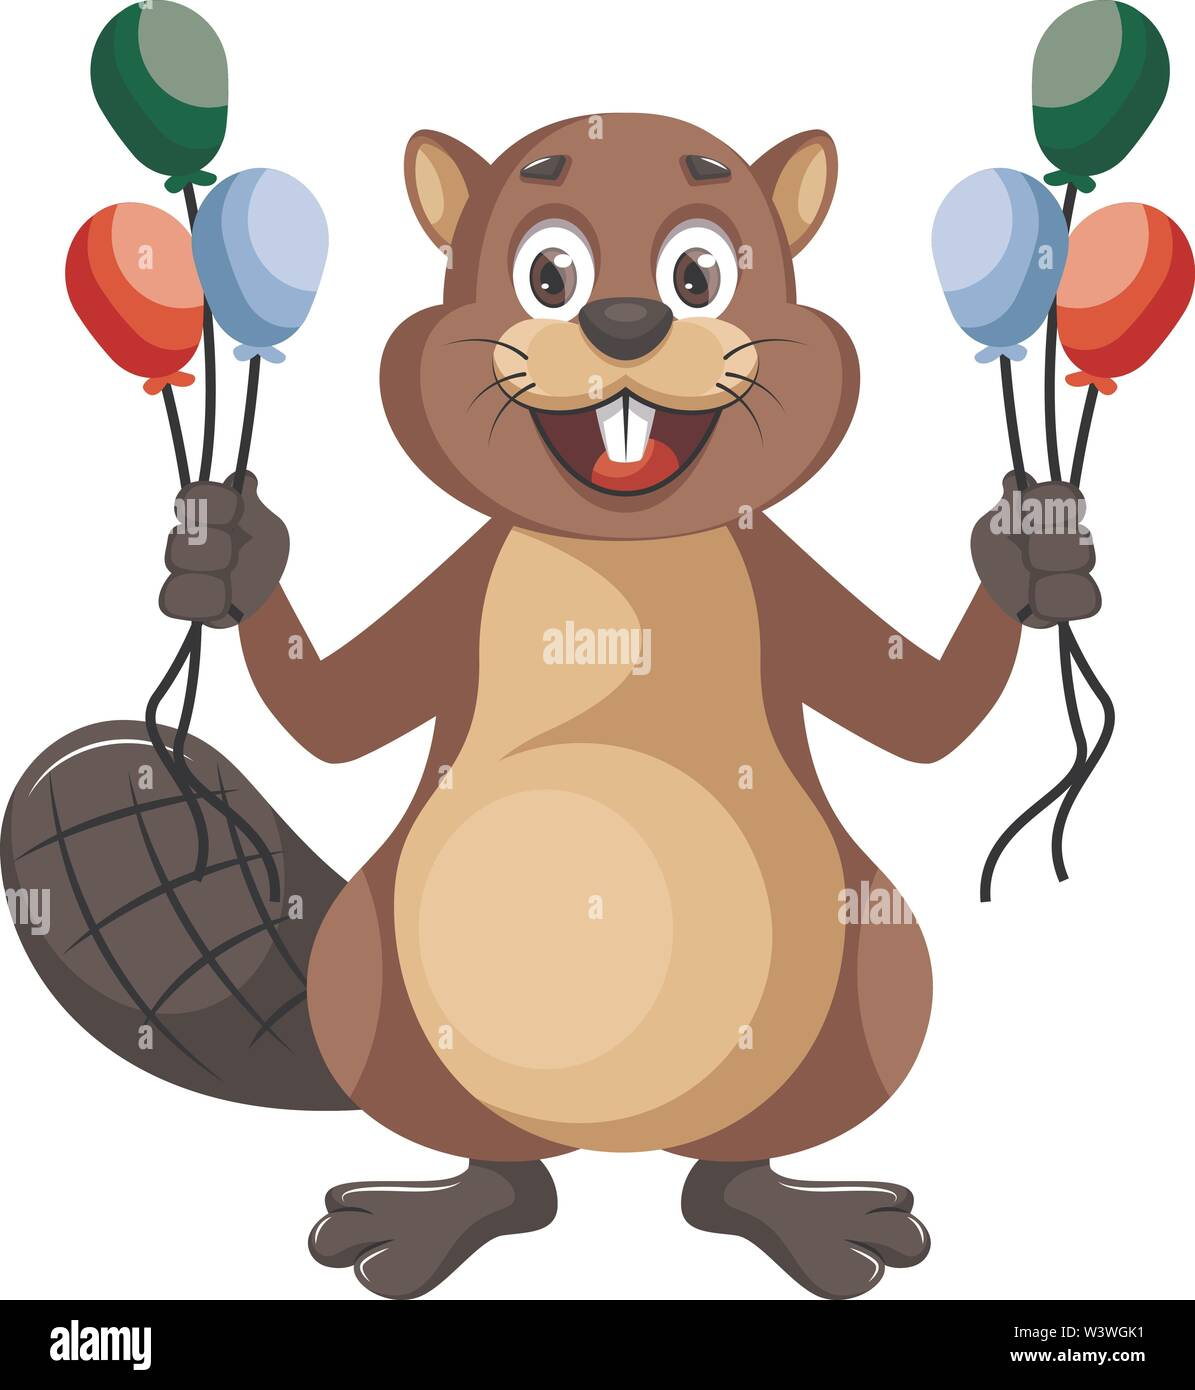 Beaver with balloons, illustration, vector on white background. - Stock Image